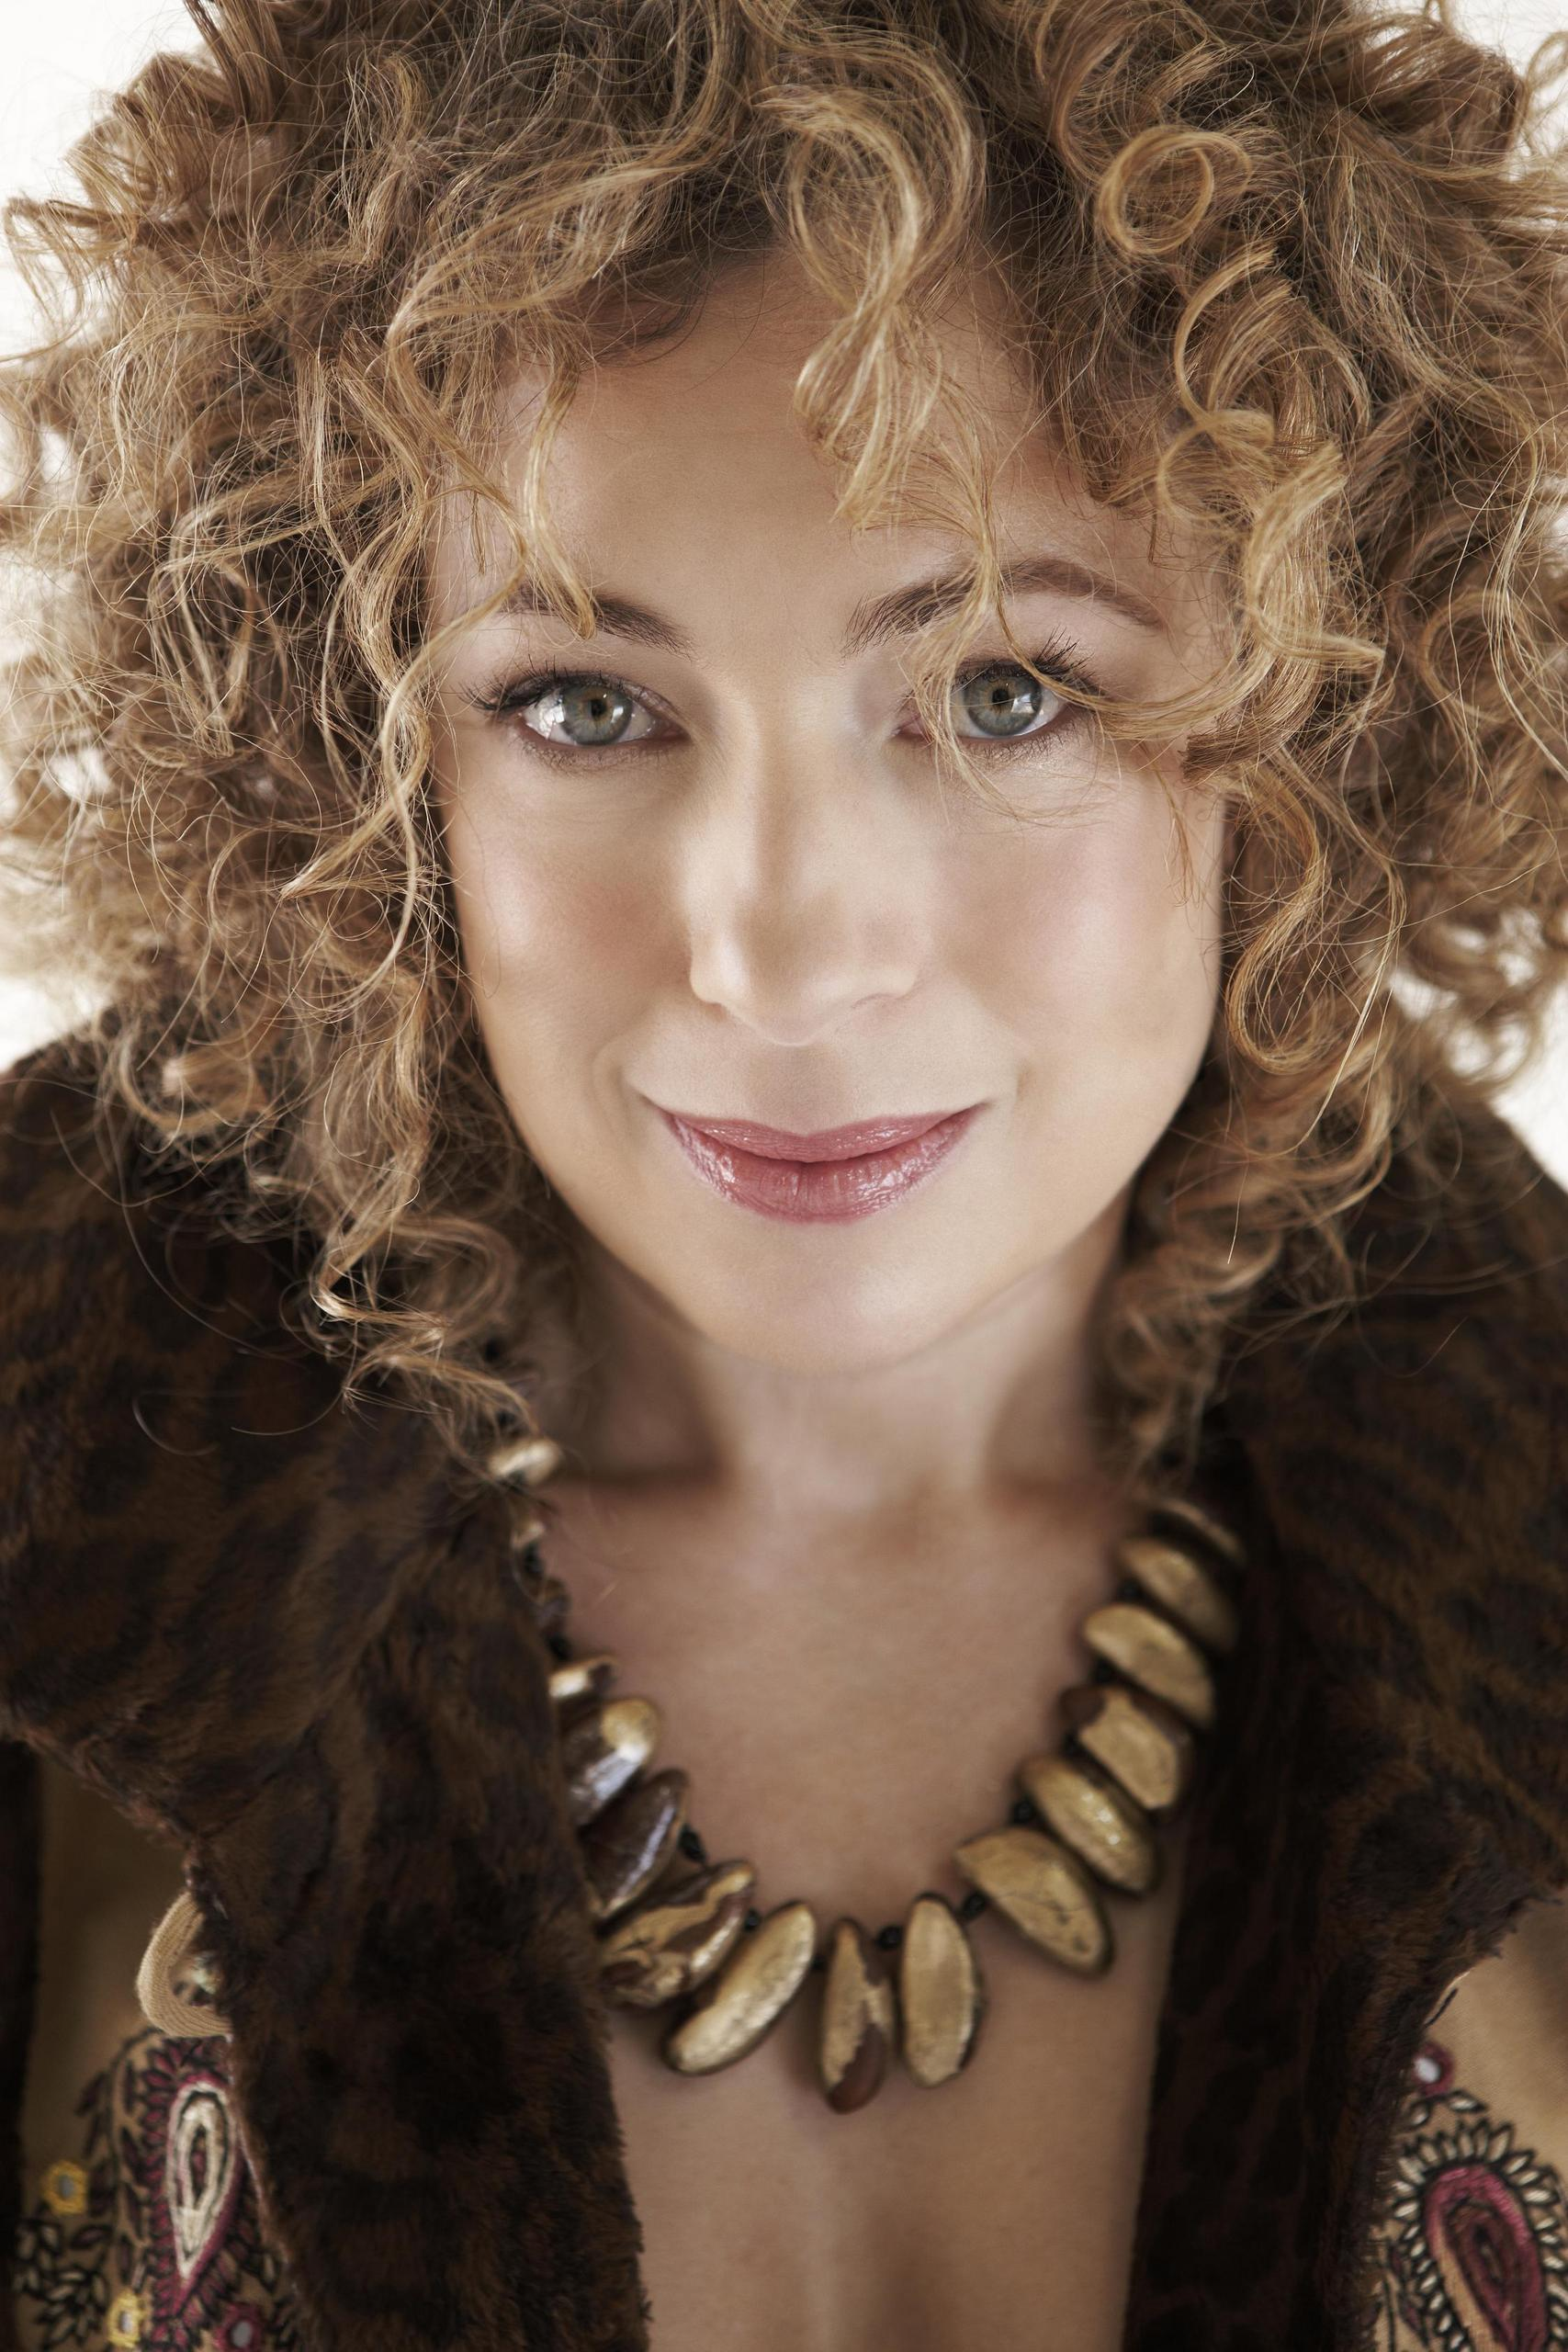 Alex Kingston fan club